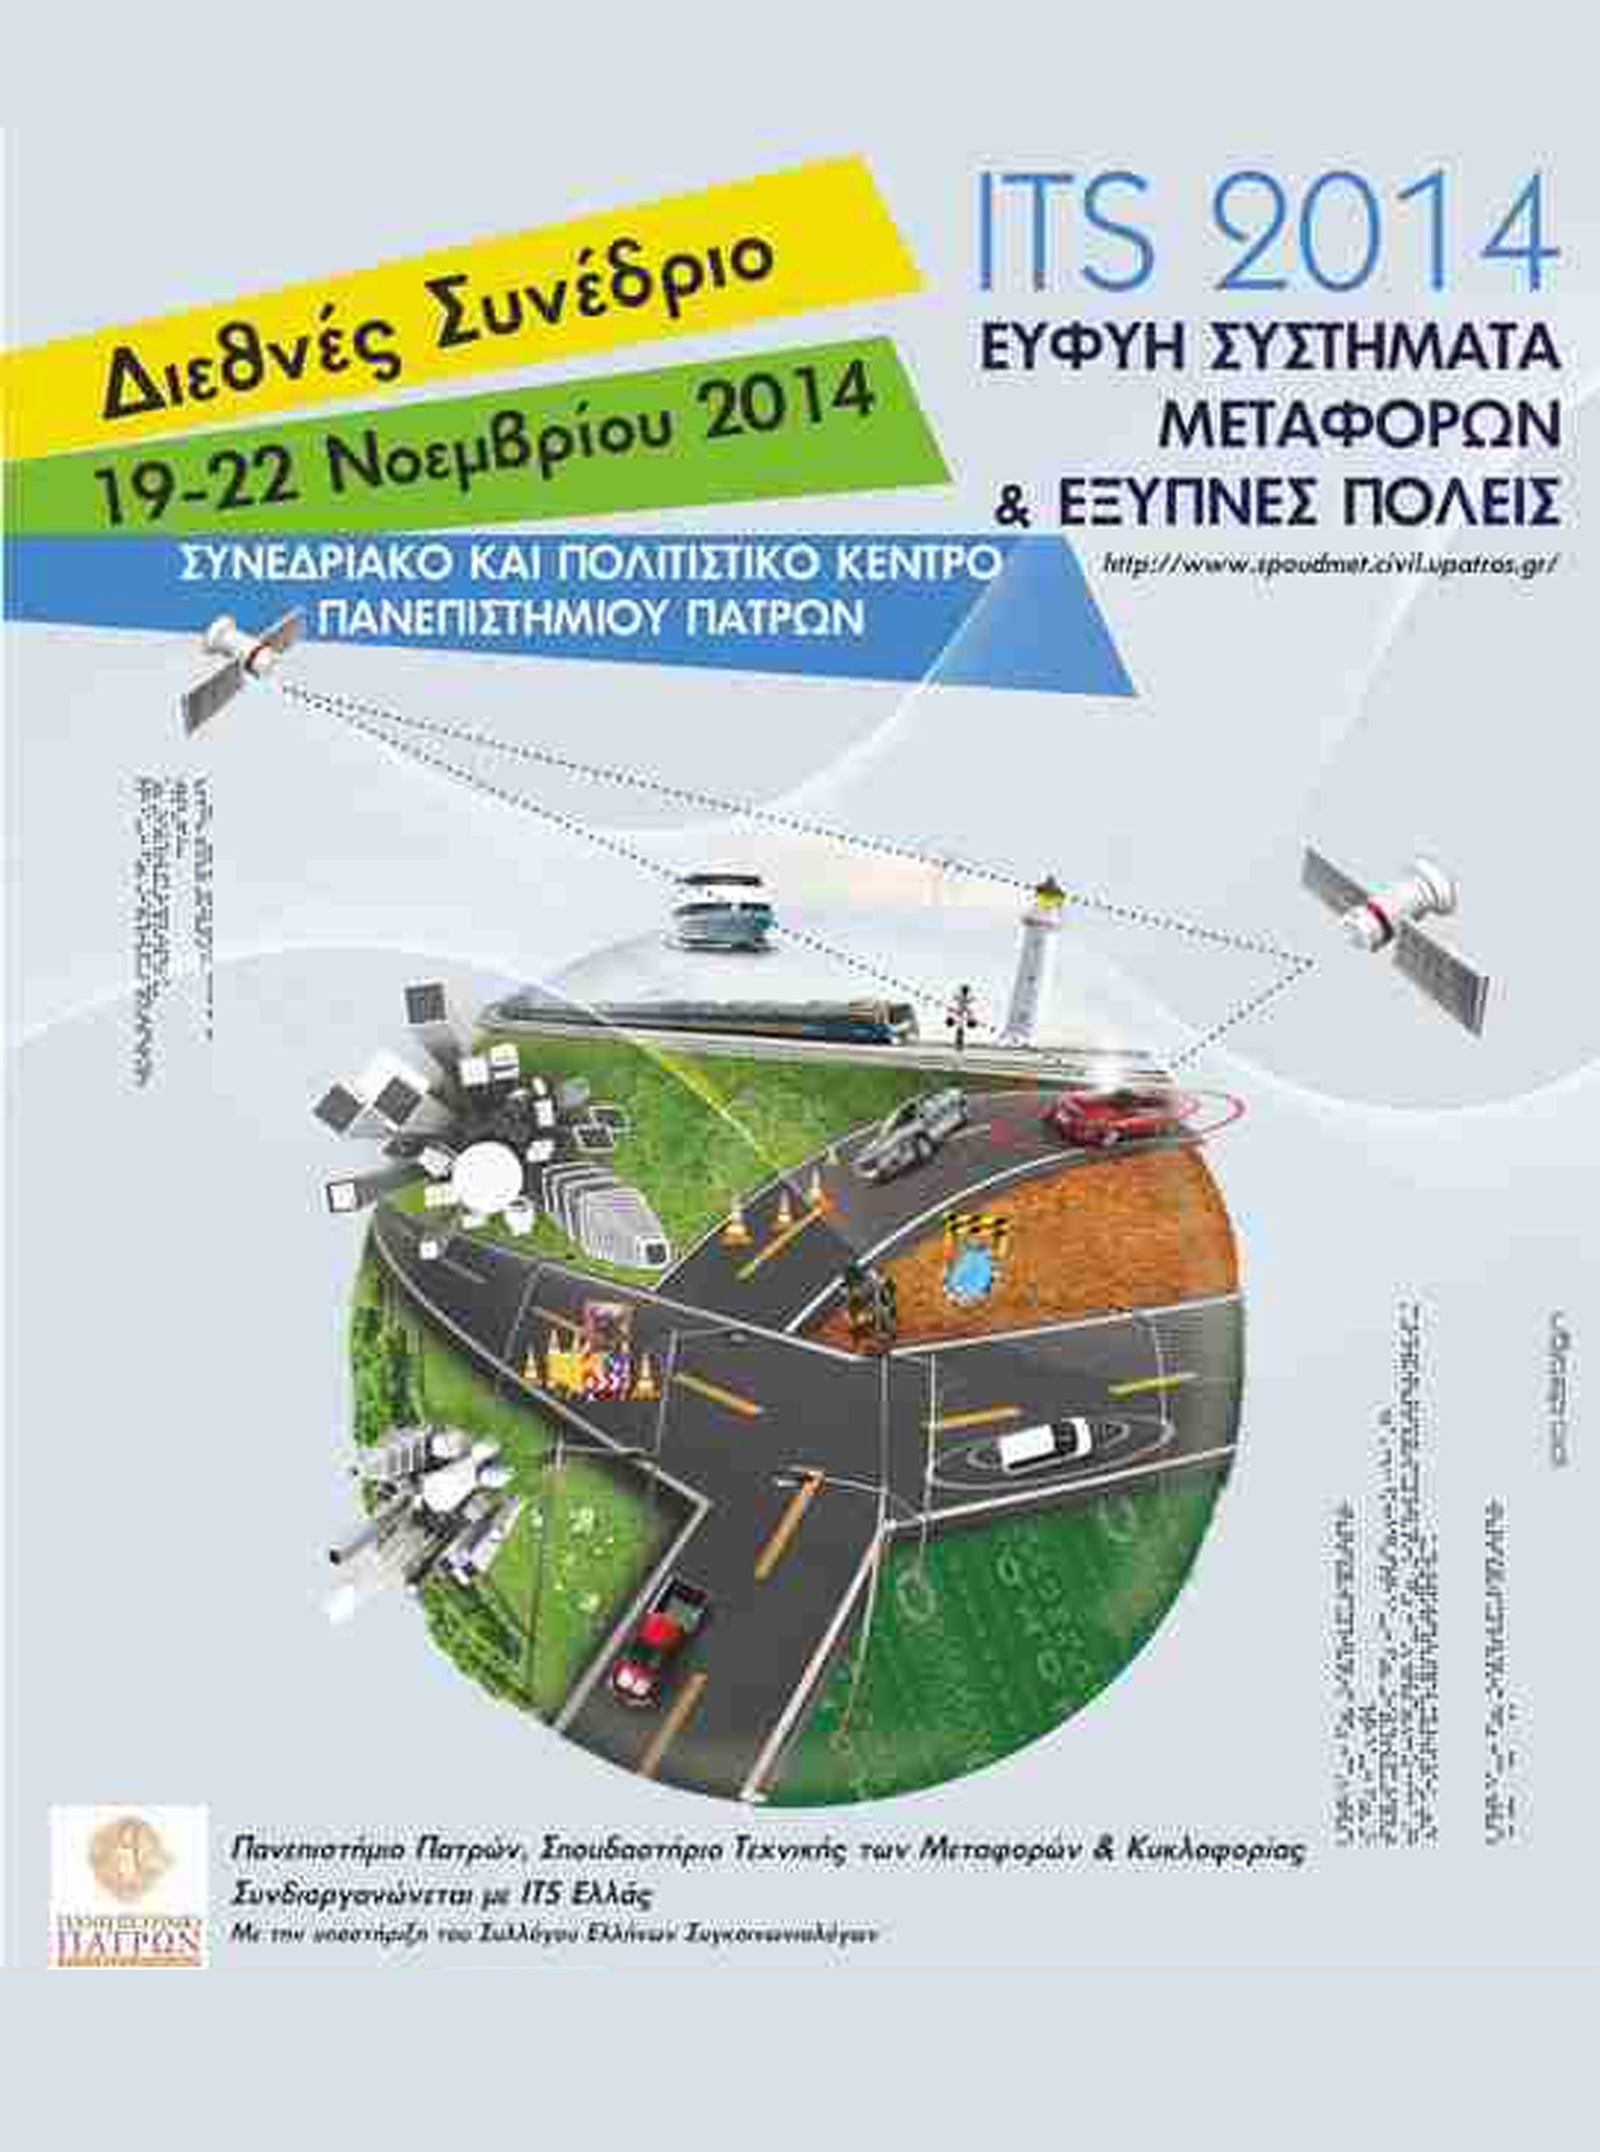 Εισήγηση Αθηνάς Βλάχου στο συνέδριο 'Intelligent Transportation Systems & Smart Cities Conference 2014', Πάτρα, με θέμα 'Deconstructing the complexity of urban processes based on their degree of 'emergency'